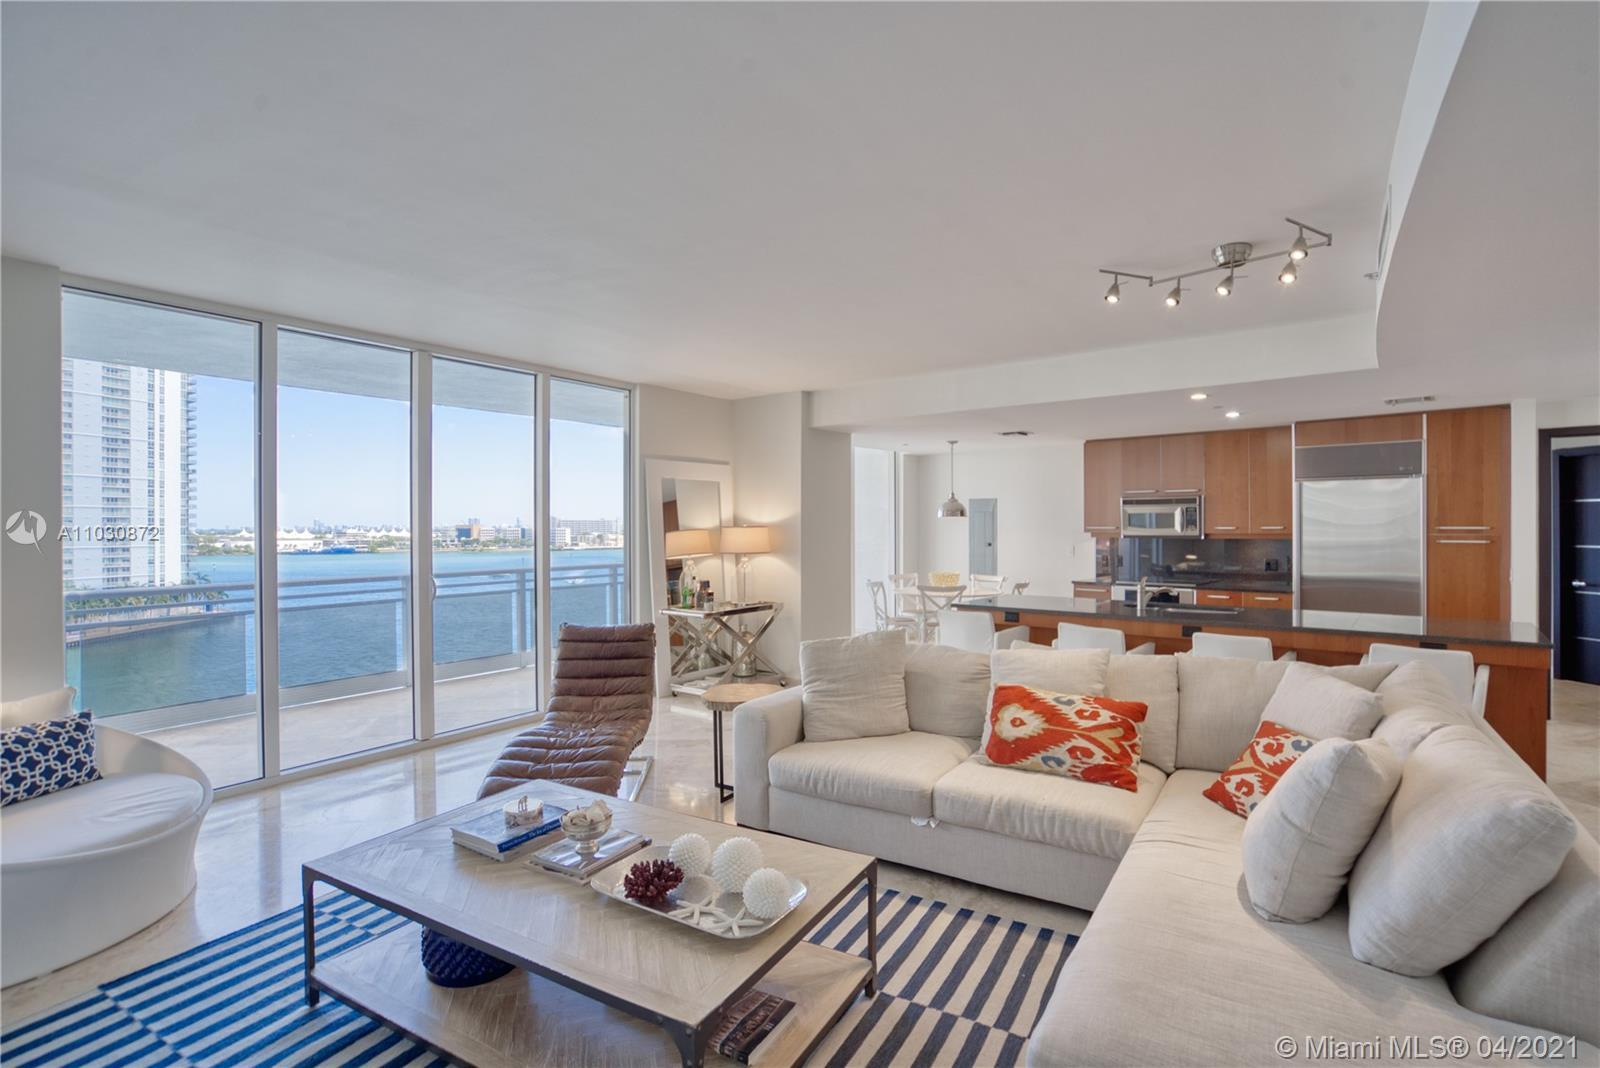 2/2.5 fully remodeled, furnished, unobstructed water views condo. Located on the 9th floor, it is ju